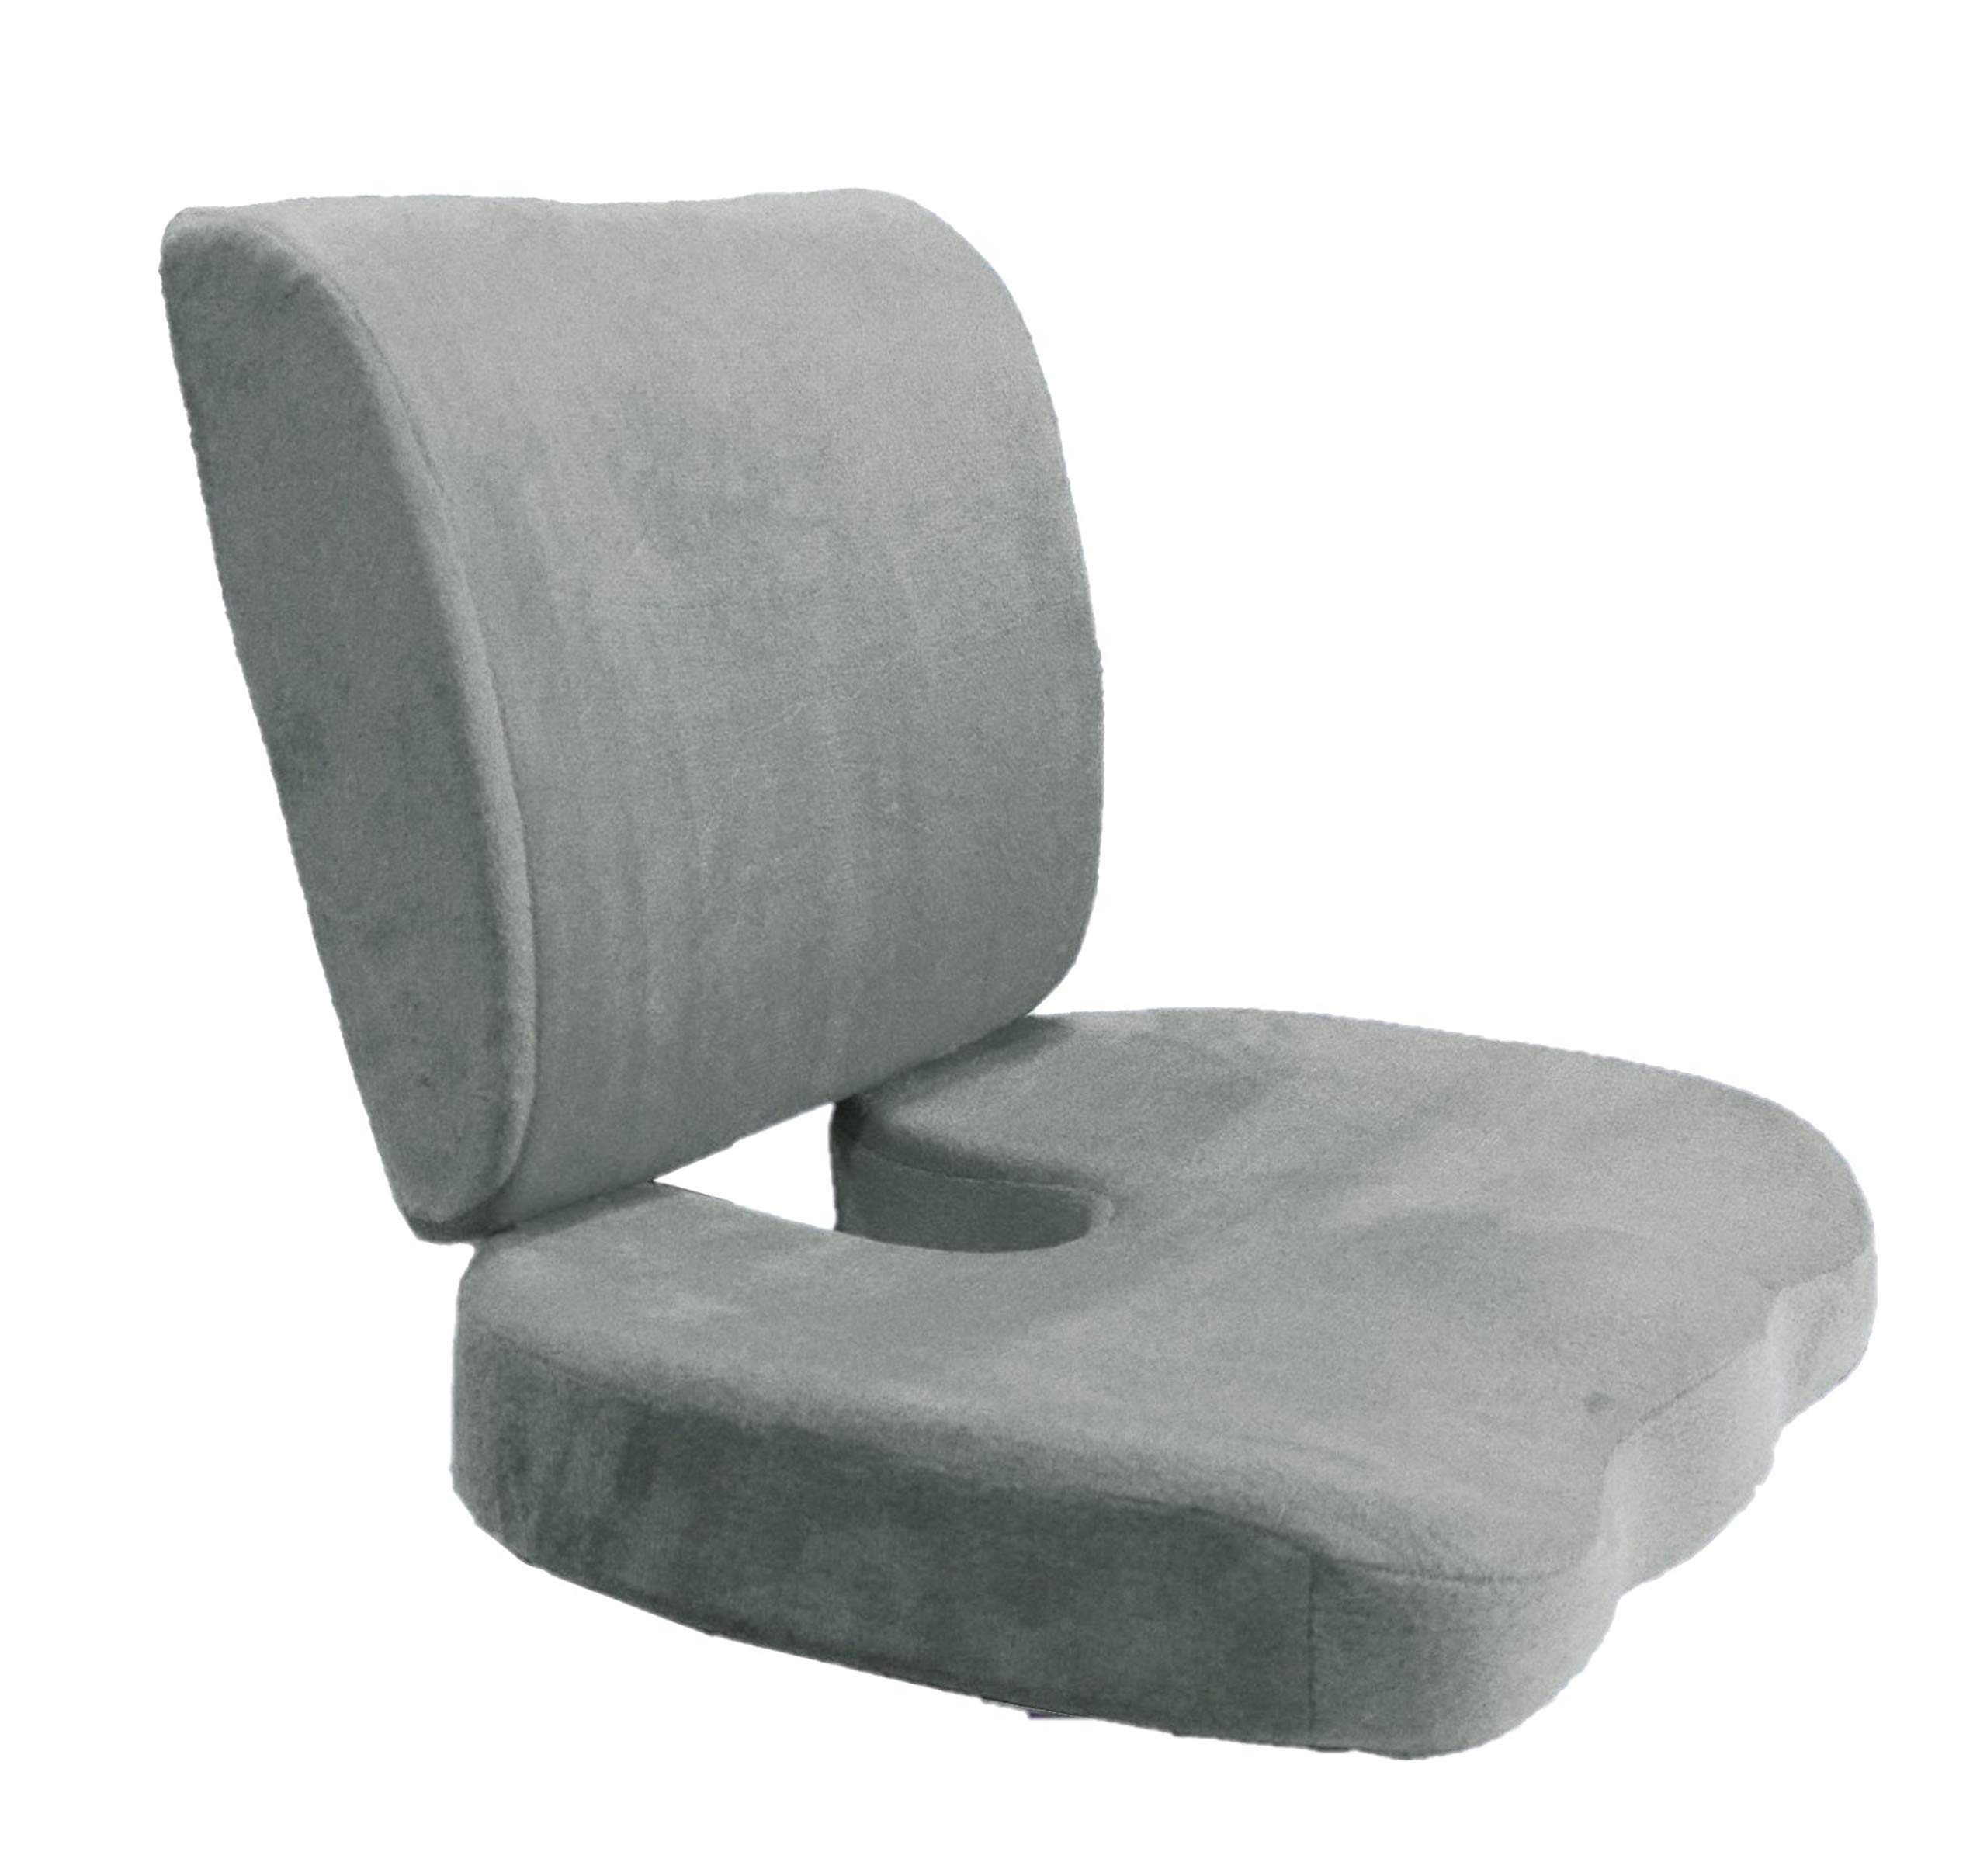 Adjustable Strap Lumbar Back Cushion and Seat Cushion: Back Support Pillow Memory Foam Car Office Chair (Gray Cushion and Seat Cushion)